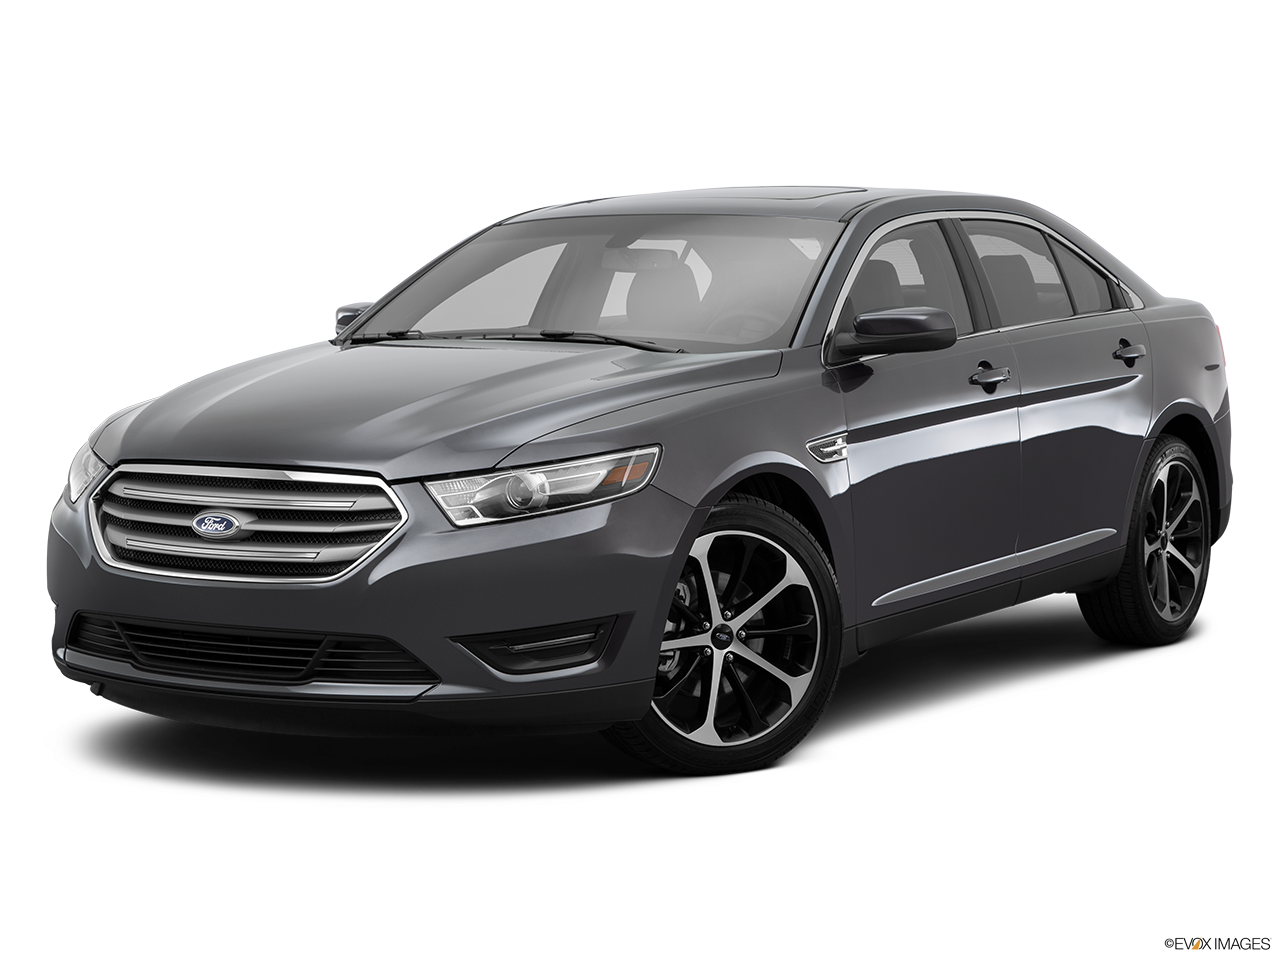 Test Drive A 2015 Ford Taurus at Galpin Ford in Los Angeles